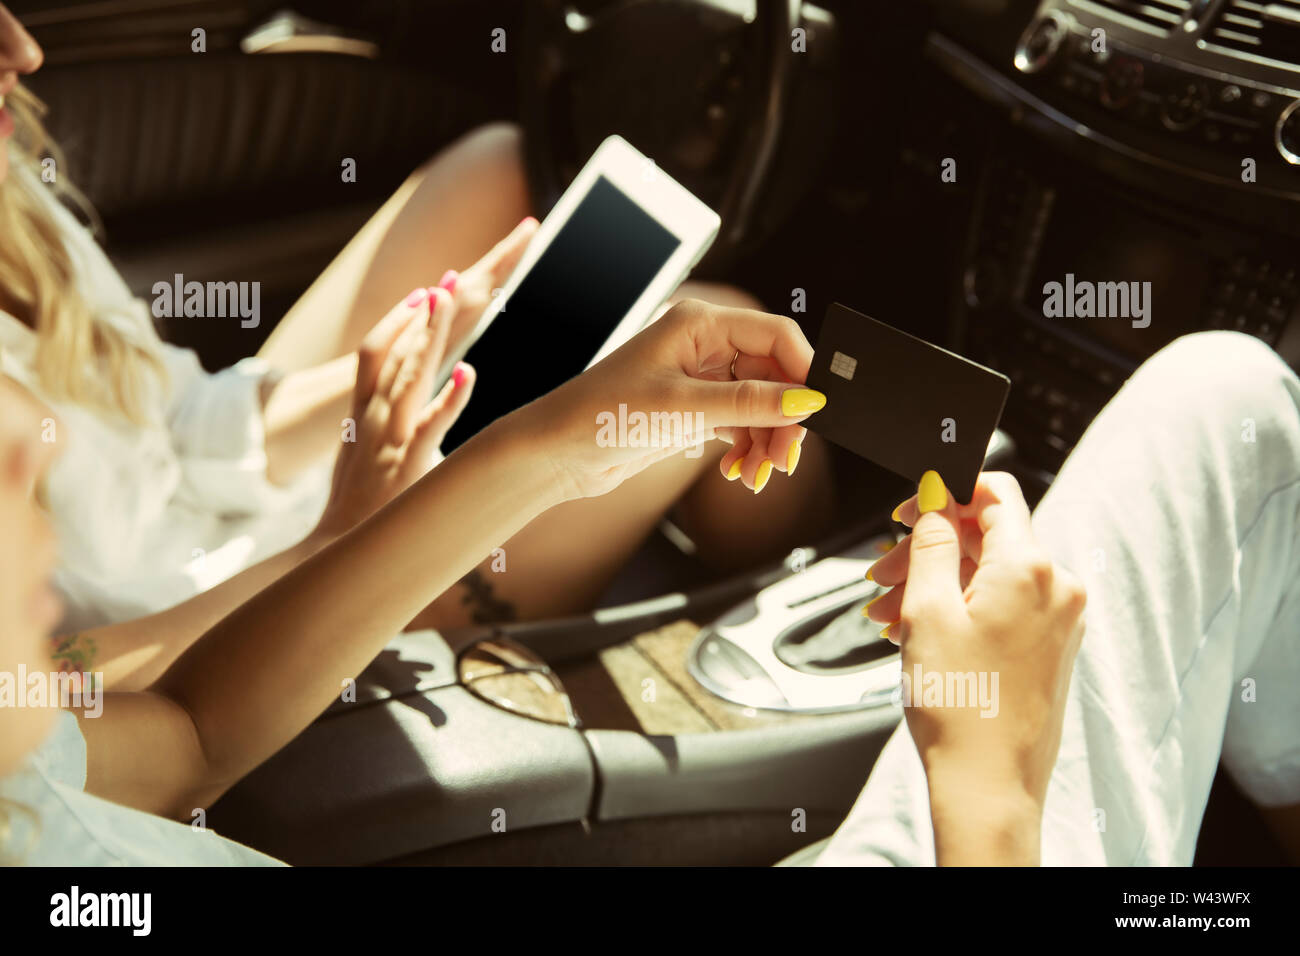 Young lesbian's couple preparing for vacation trip on the car in sunny day. Women sitting and ready for going to sea, riverside or ocean. Concept of relationship, love, summer, weekend, honeymoon. Stock Photo